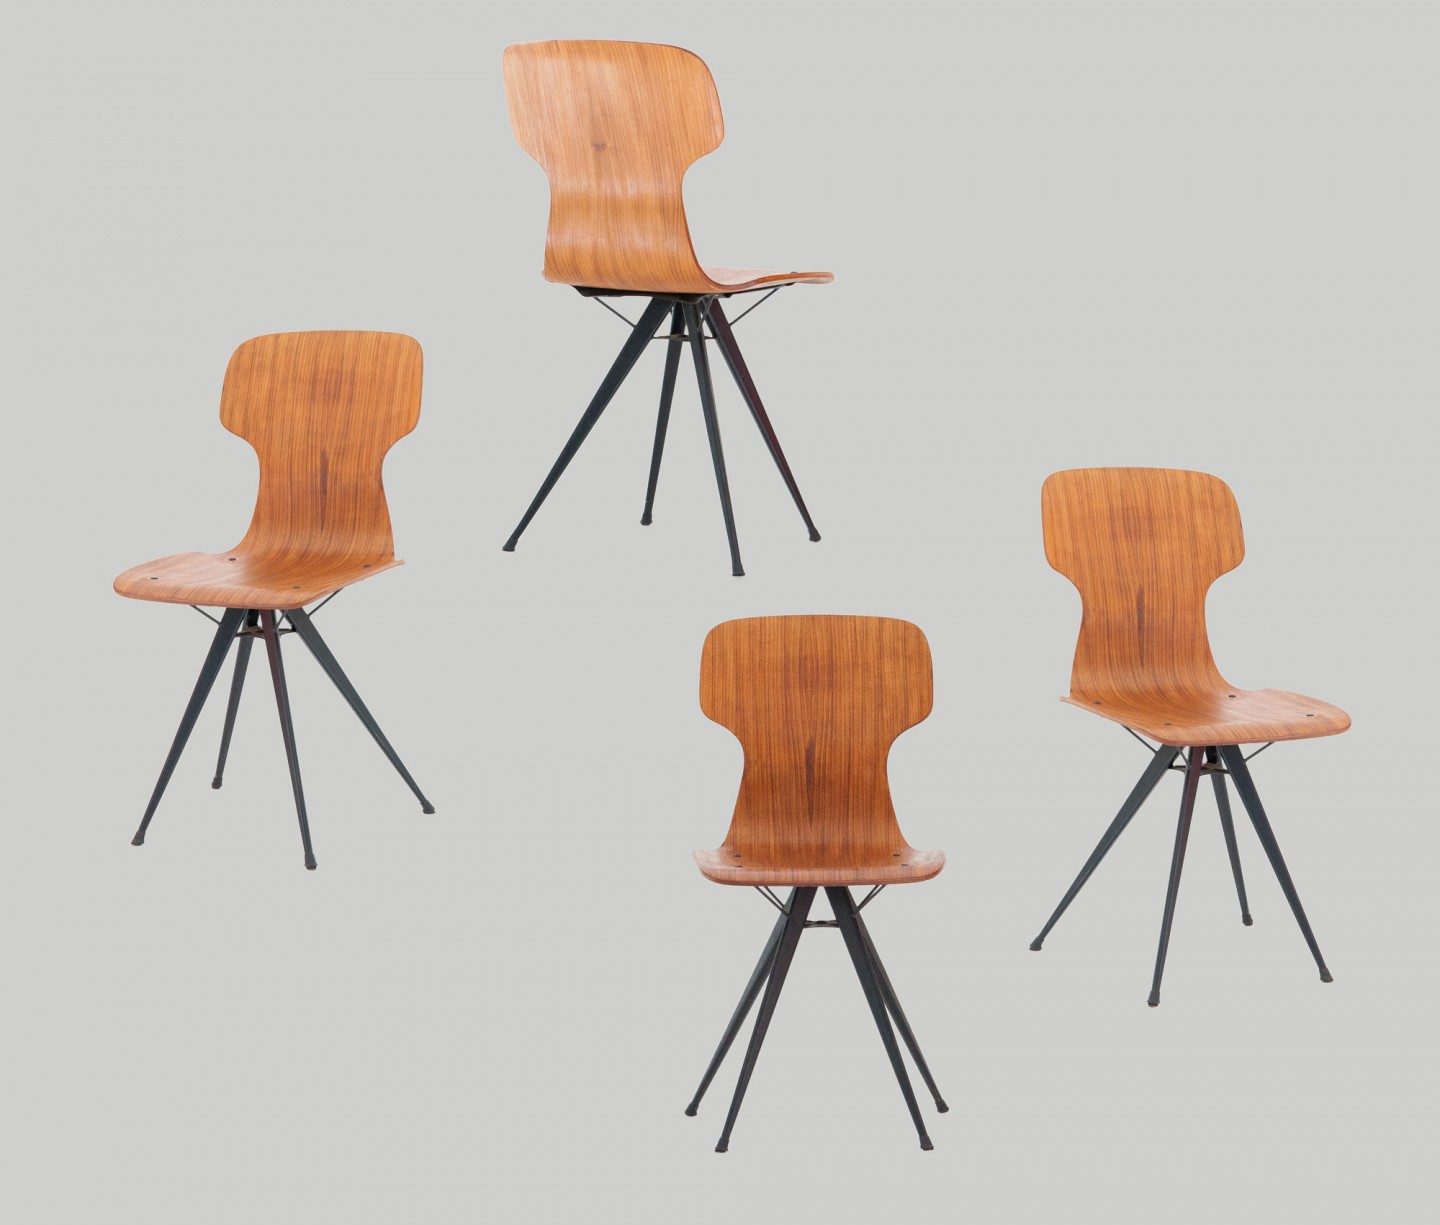 Italian conical Iron legs and curved teak chairs , 1950s  SE280 – not available